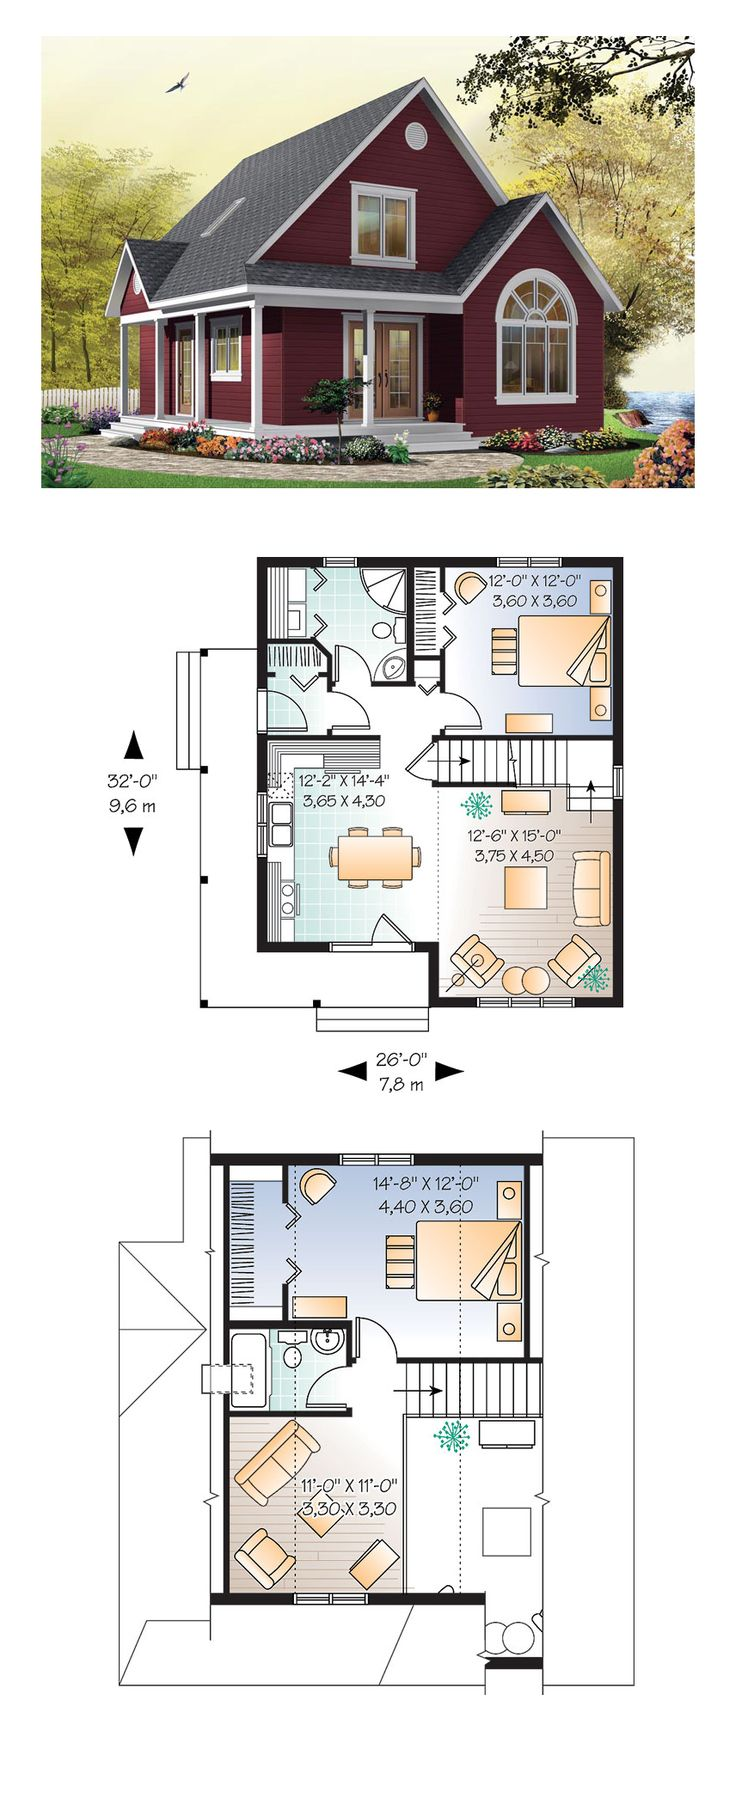 Phenomenal 17 Best Ideas About Tiny House Plans On Pinterest Small House Largest Home Design Picture Inspirations Pitcheantrous